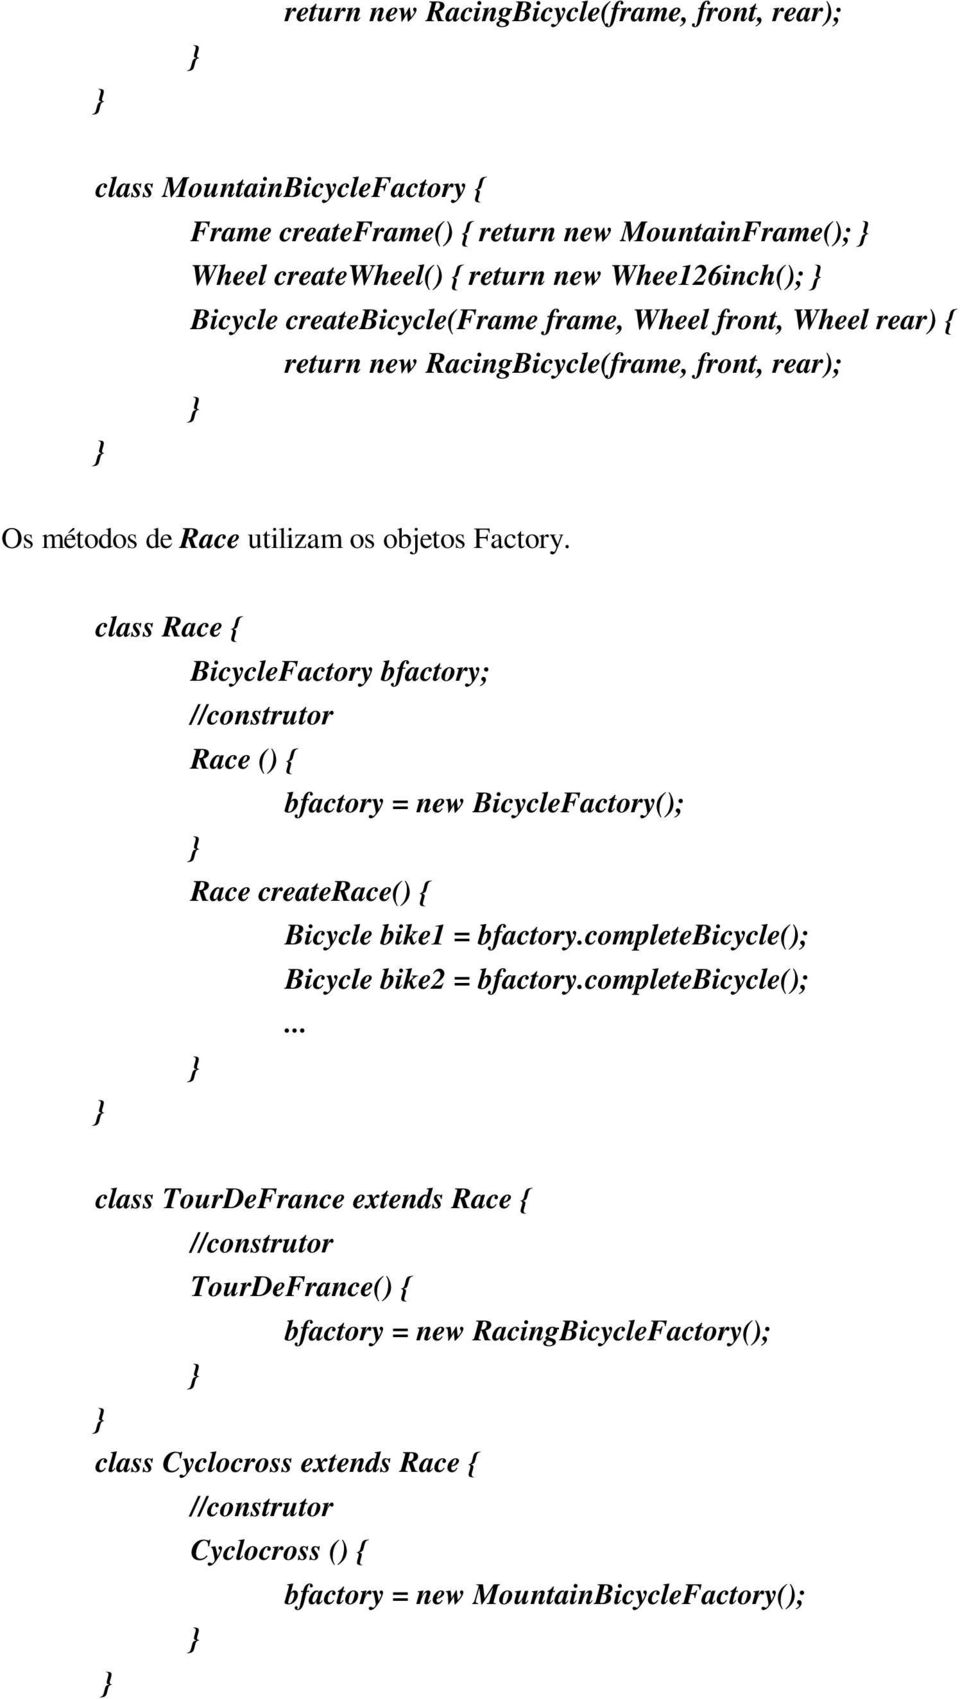 class Race { BicycleFactory bfactory; //construtor Race () { bfactory = new BicycleFactory(); Race createrace() { Bicycle bike1 = bfactory.completebicycle(); Bicycle bike2 = bfactory.